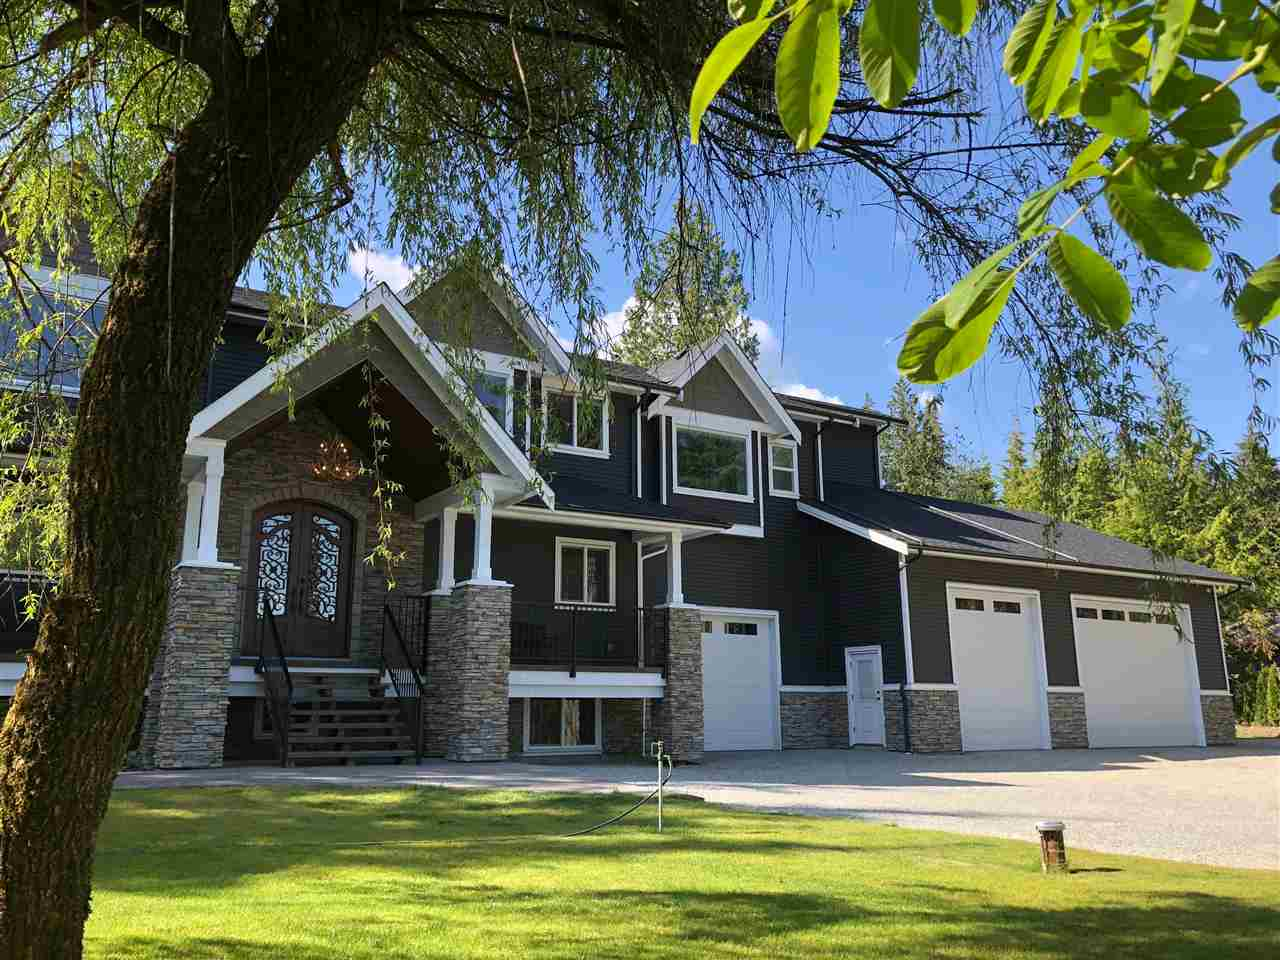 12654 POWELL STREET, 5 bed, 7 bath, at $1,899,800